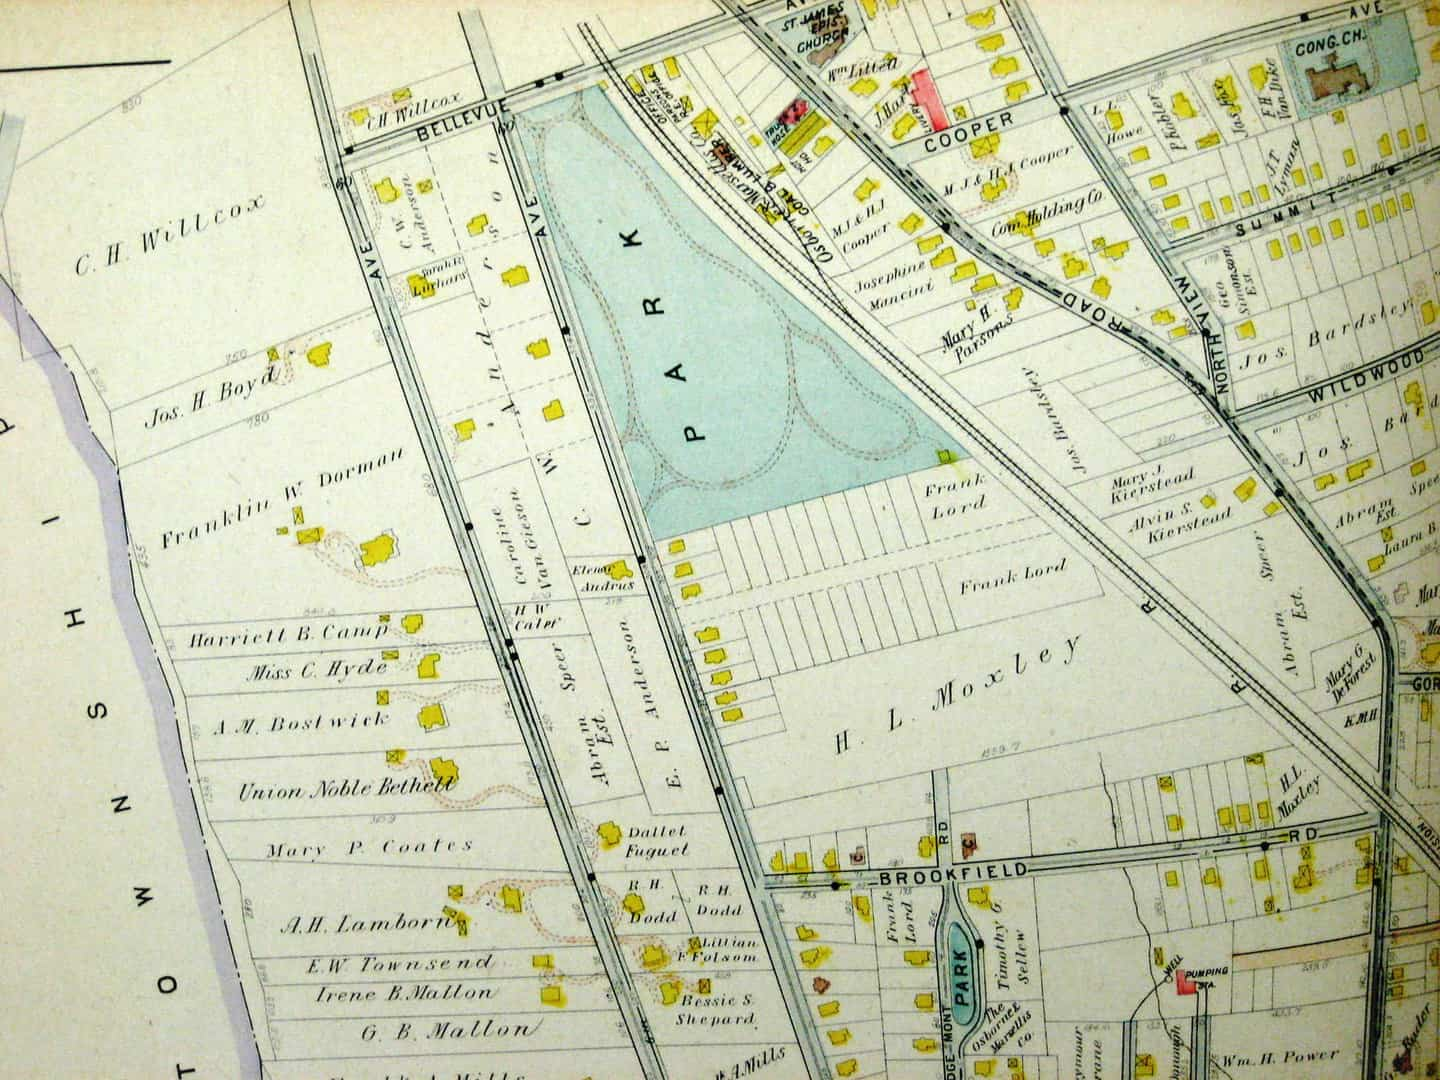 Anderson Park with an early, unrealized subdivision plat to the south before Aaron W. Godfrey bought the land, shown in a 1906 atlas.